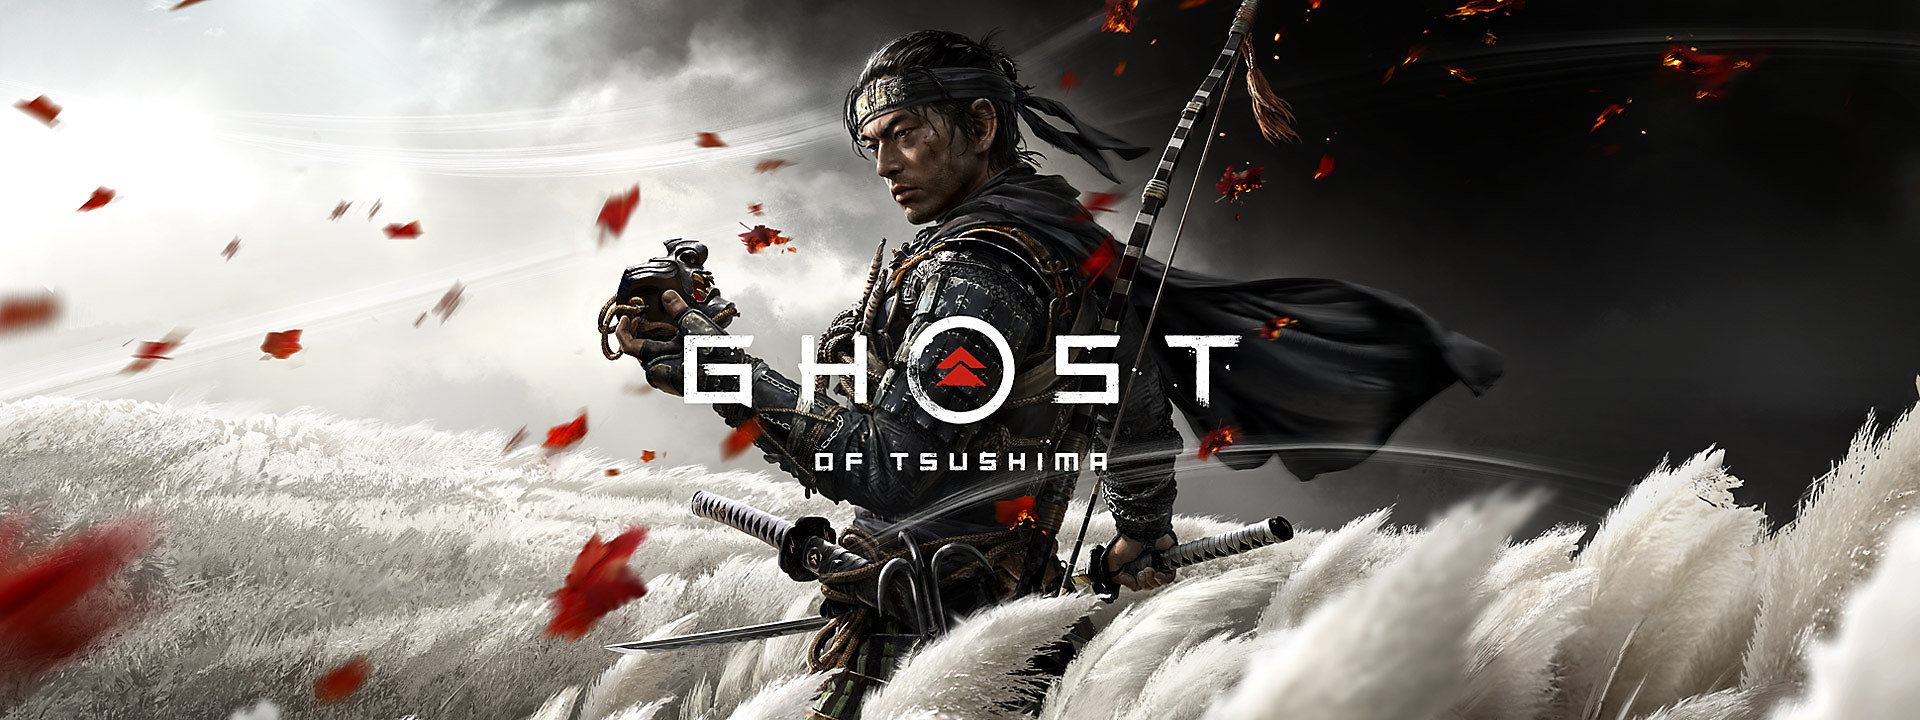 Ghost of Tsushima - Coming July 17